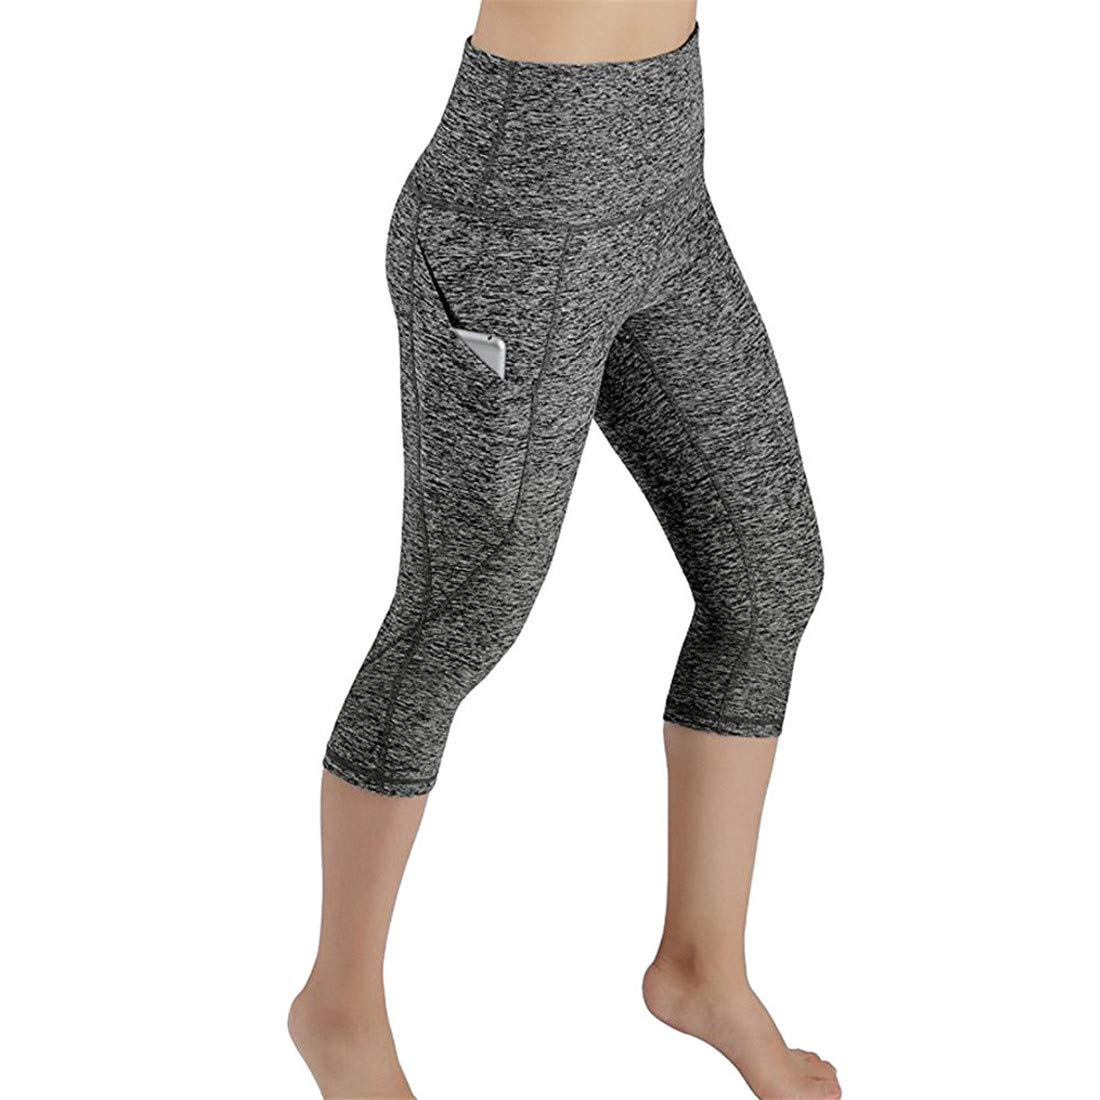 High Waist Yoga Pants Womens Print Active Workout Running Butt Lift Pants Yoga Leggings Gym Fitted Stretch Tights